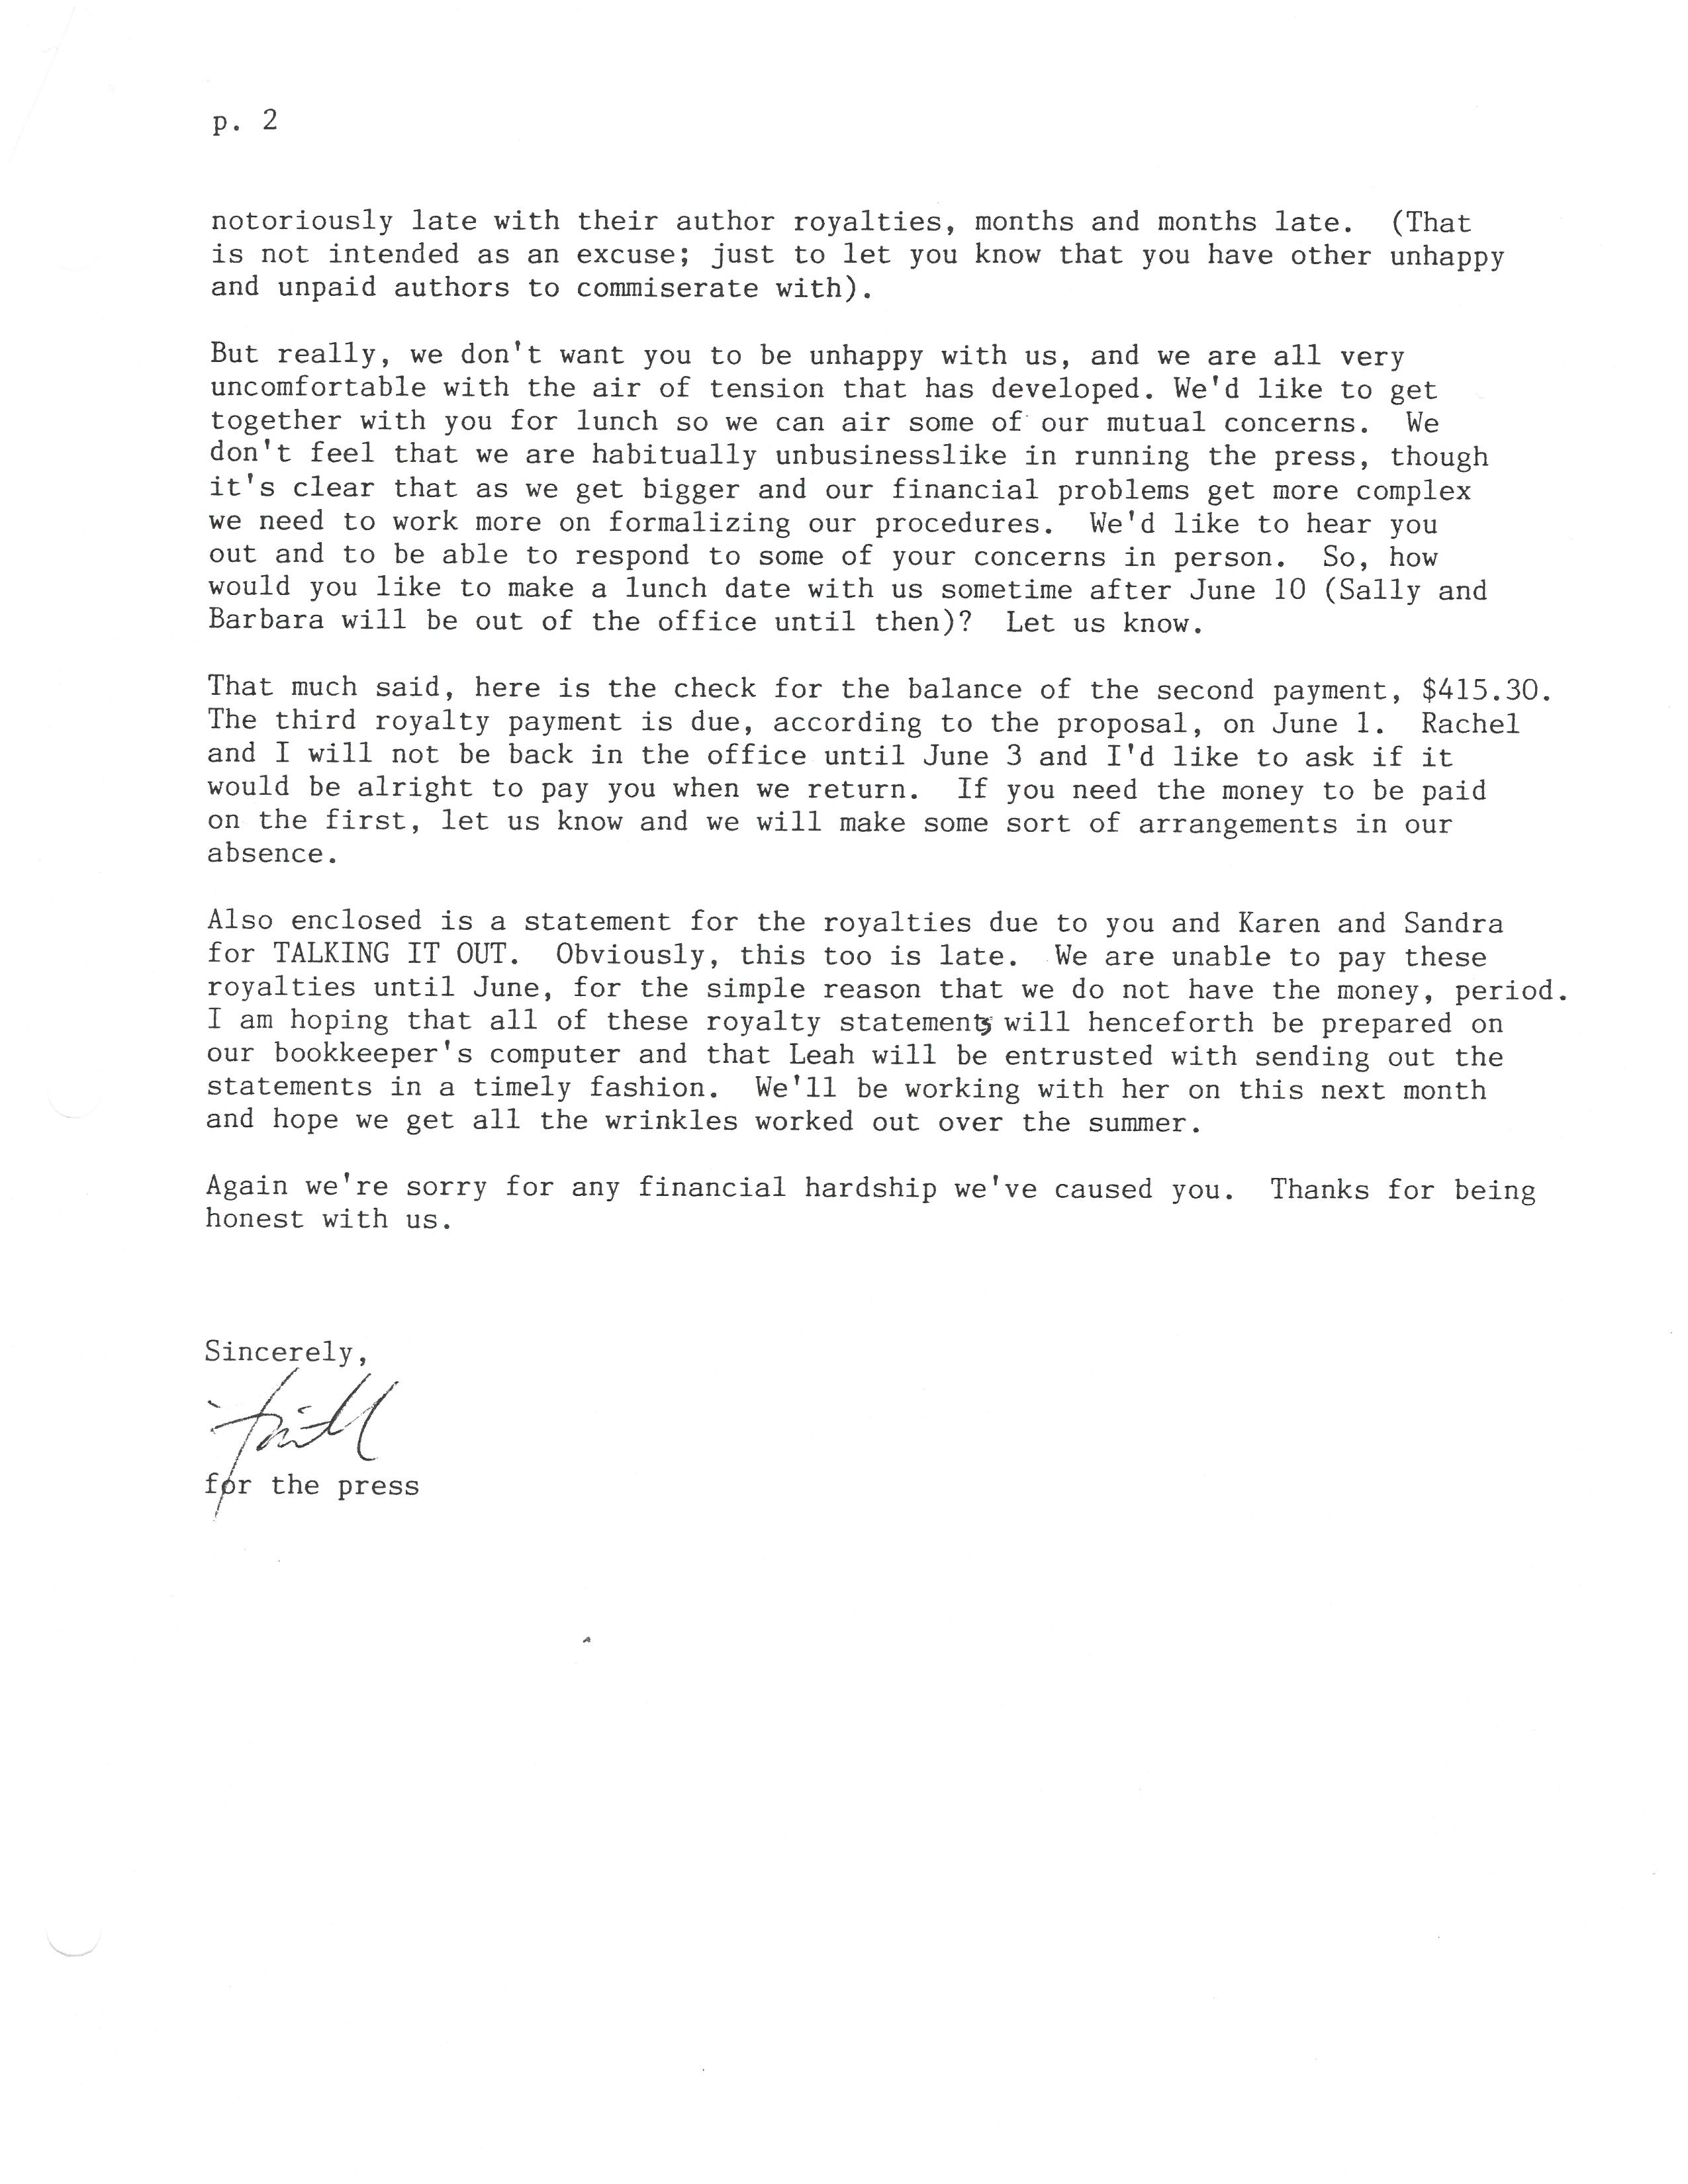 14 may 1985 letter pt 2